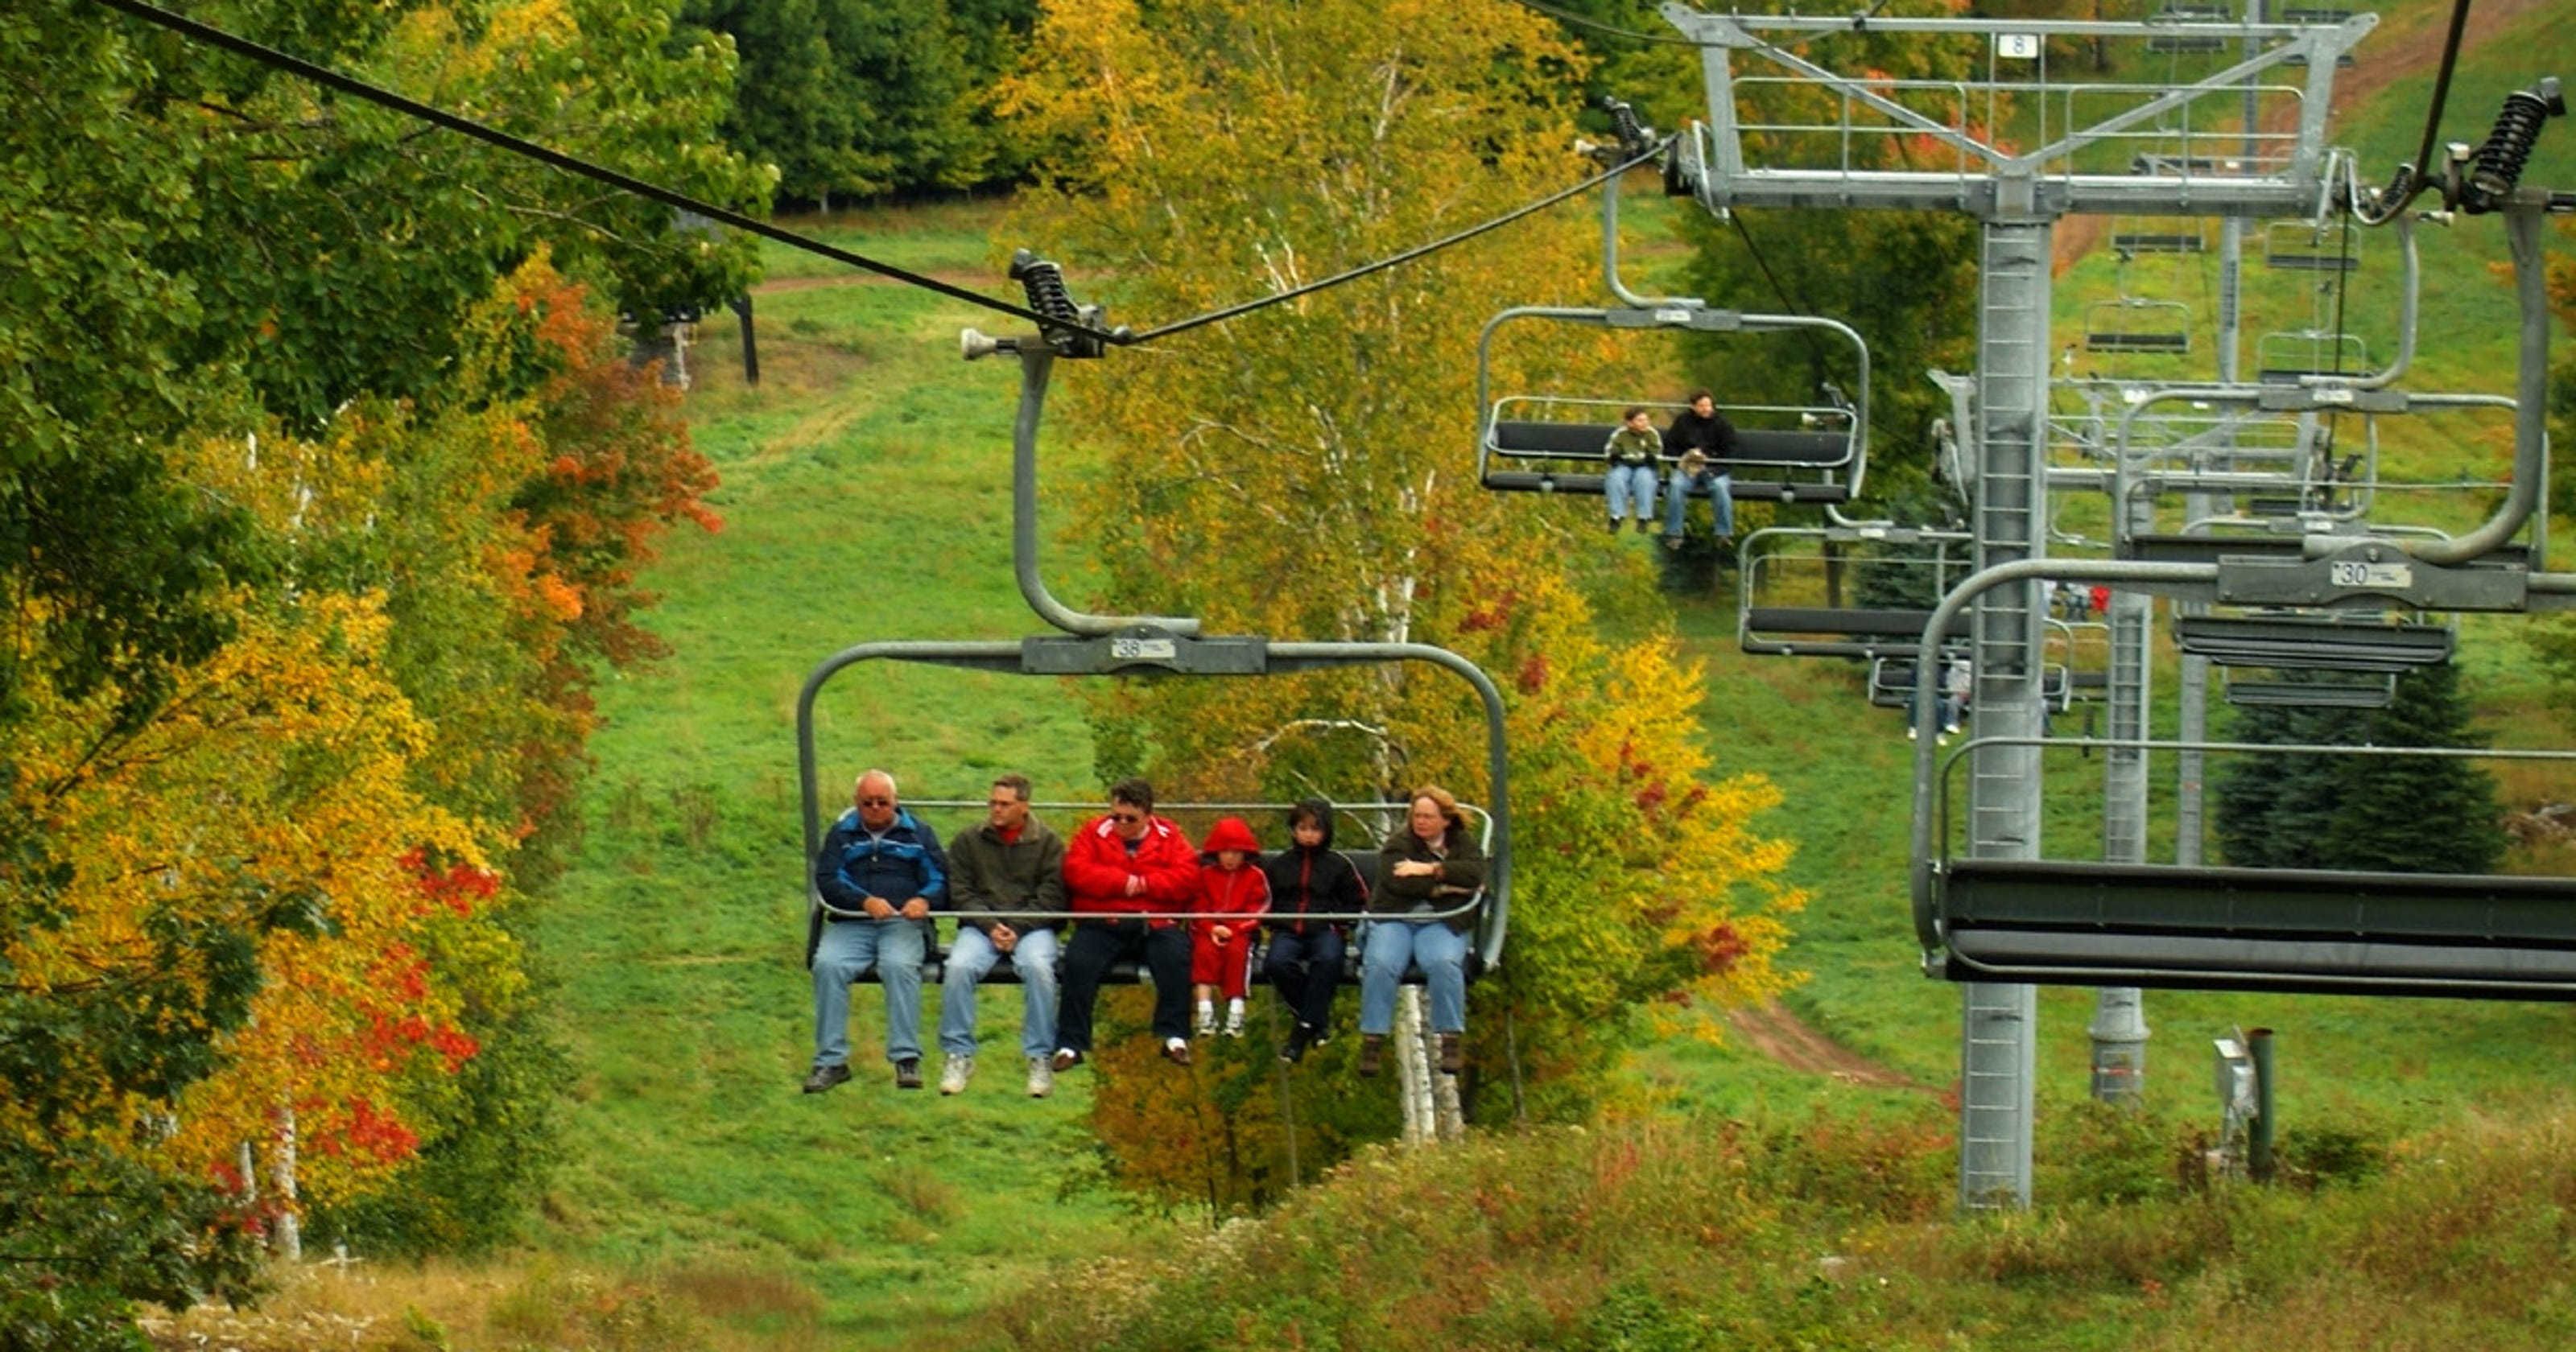 Beef A Rama Fall Colors Comet Sky Ride And More To Do